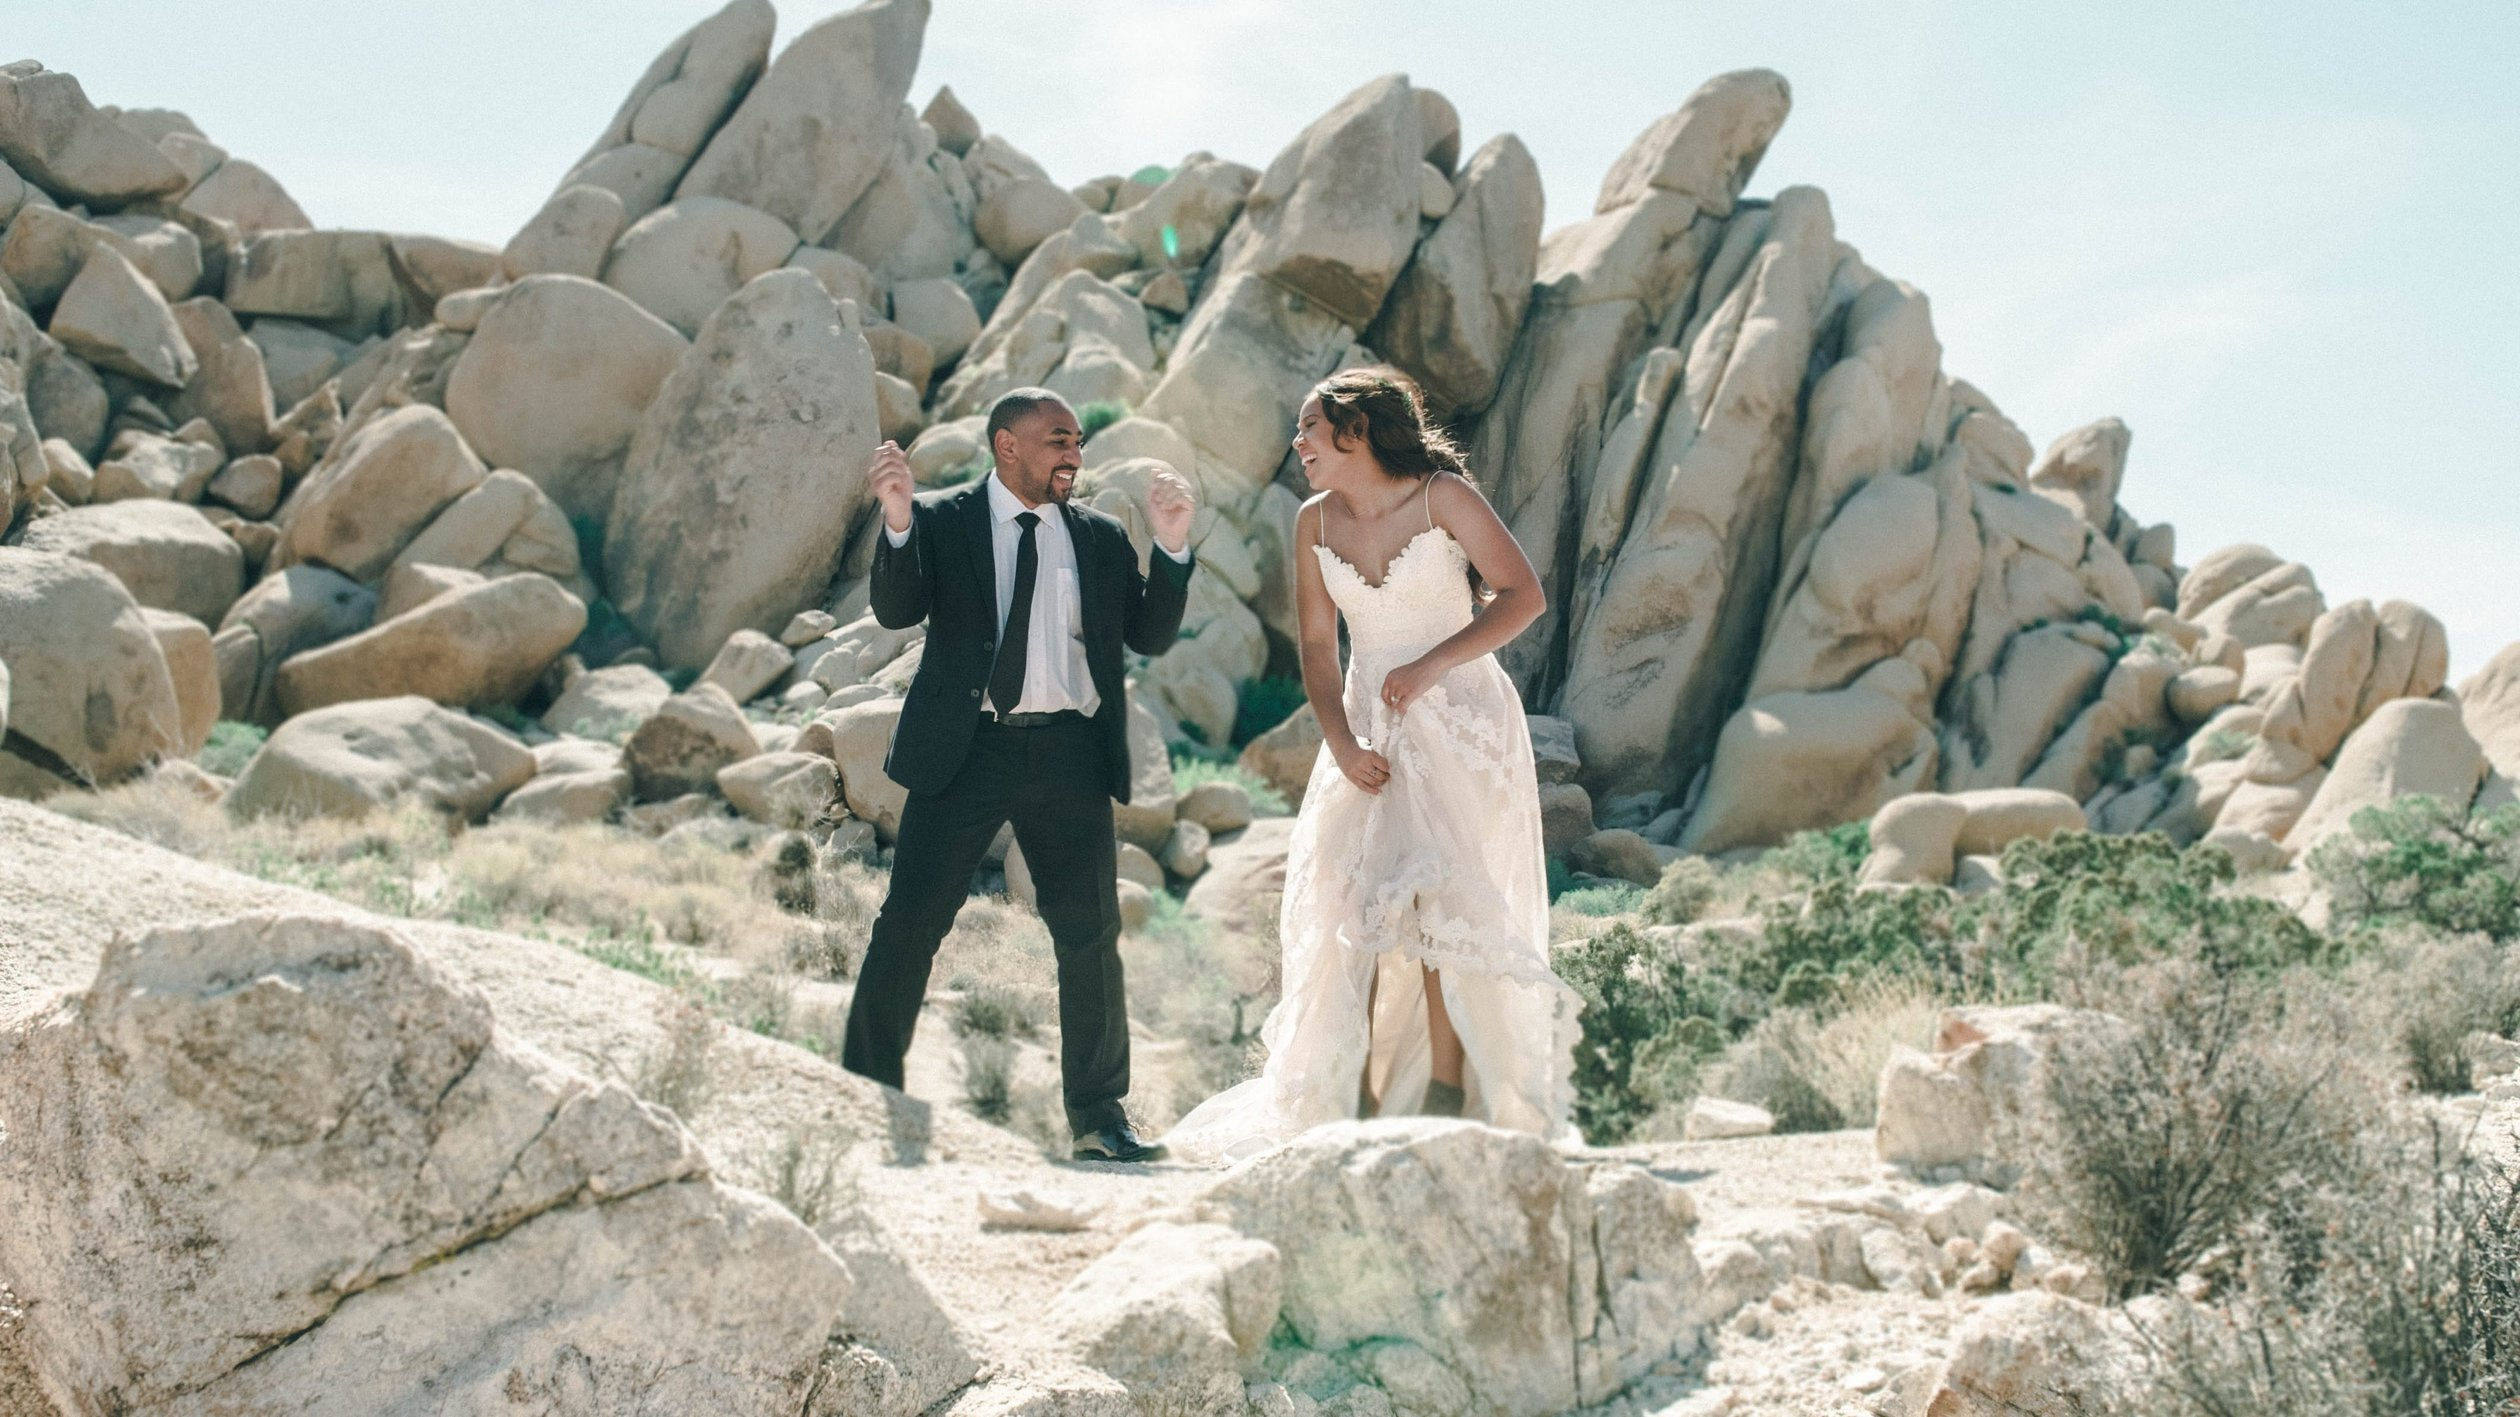 The Complete Guide to Wedding Photography